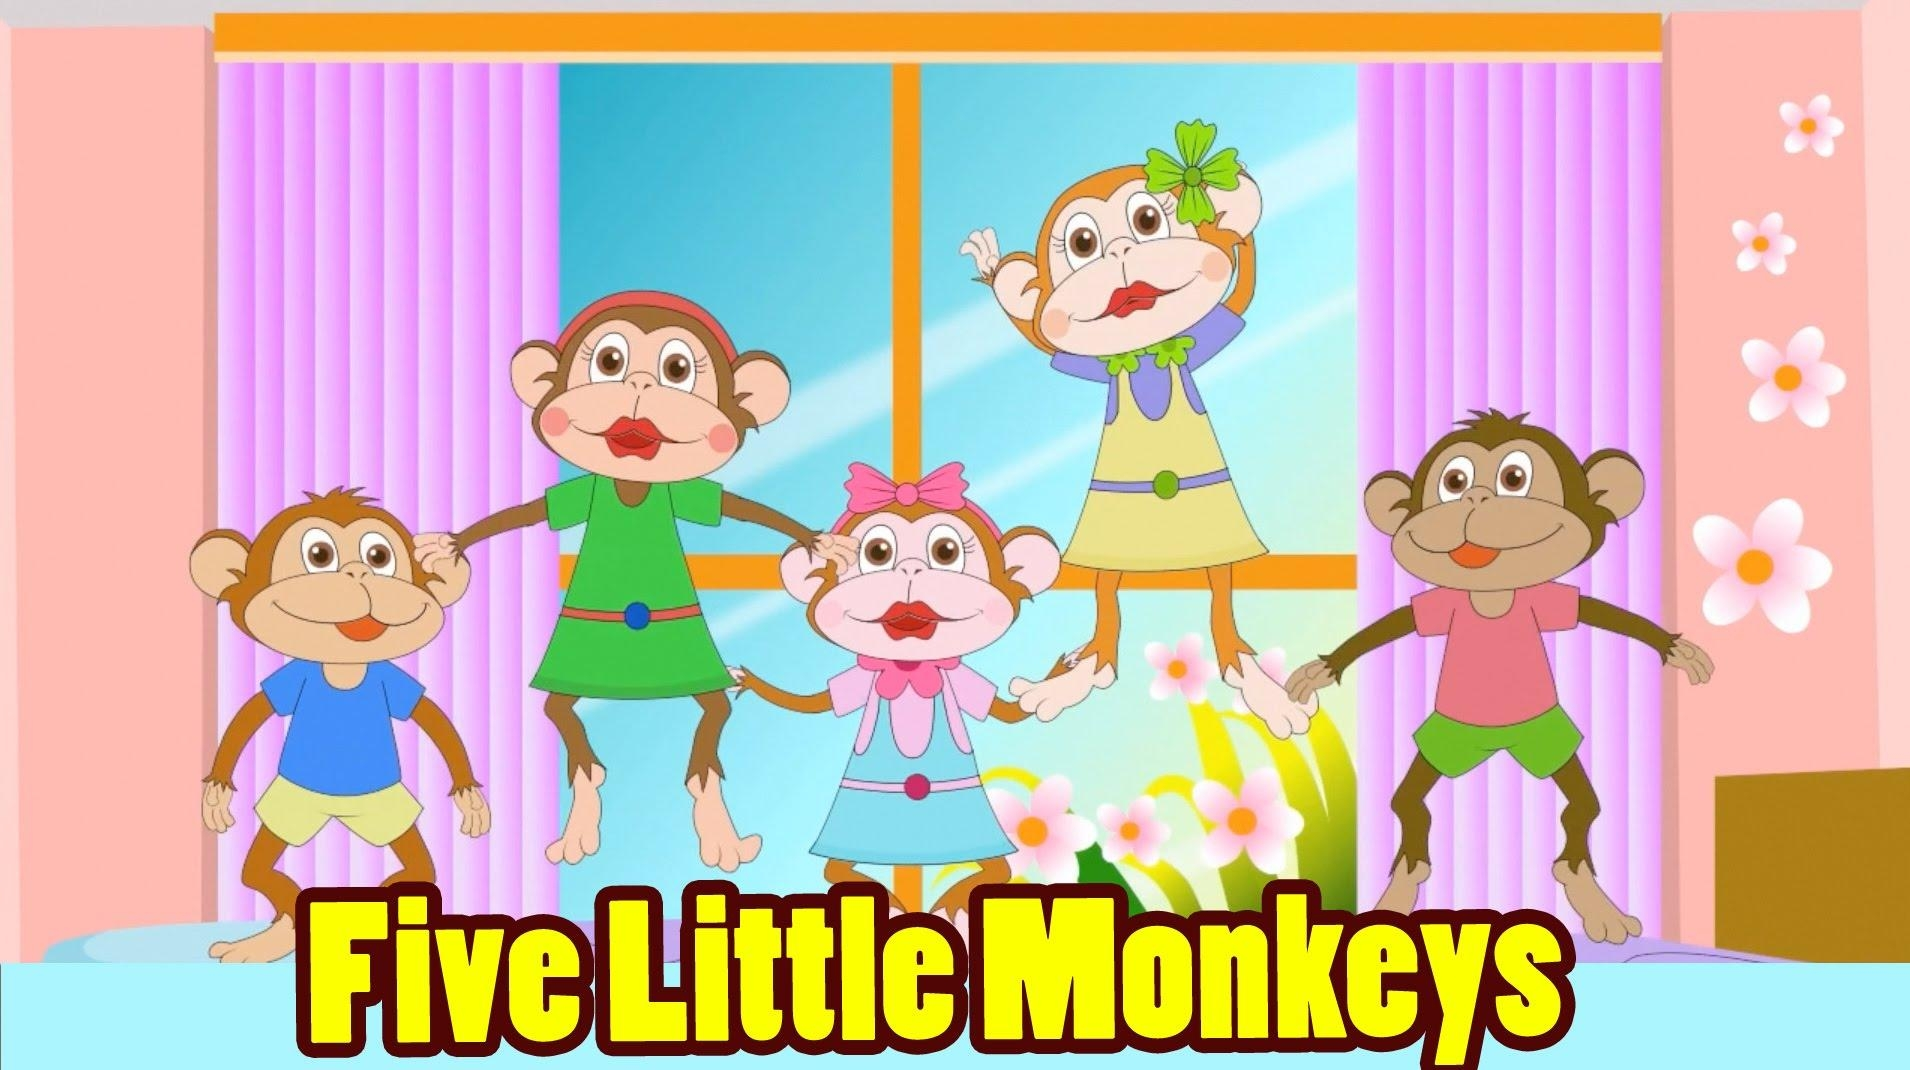 Five Little Monkeys Jumping On The Bed With Lyrics – Kids Songs Intended For No More Monkeys Jumping On The Bed Wall Art (Image 12 of 20)